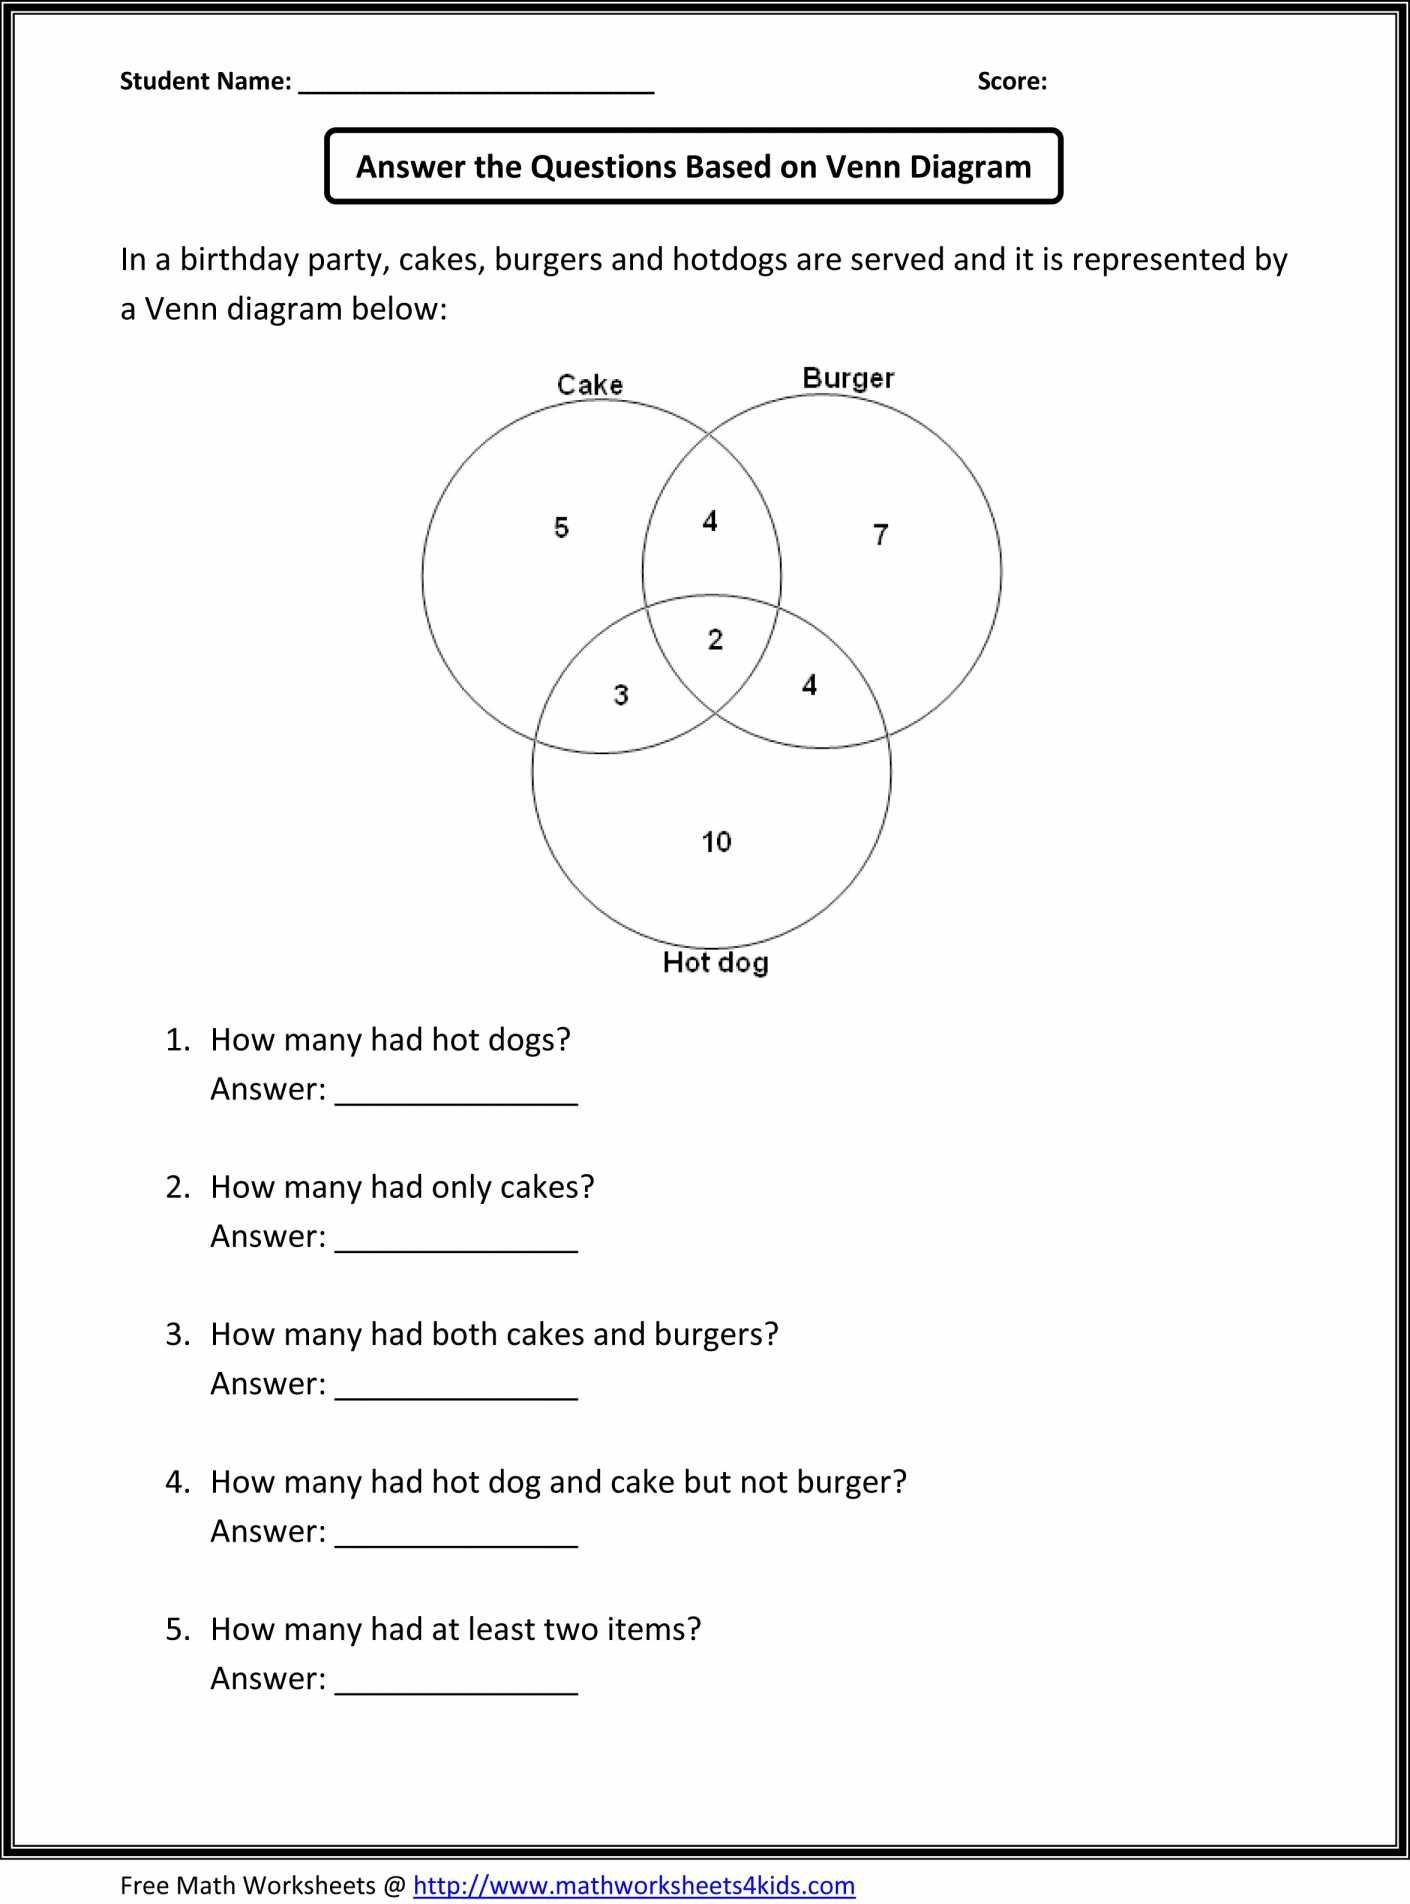 41 Stunning 6th Grade Math Worksheets Design